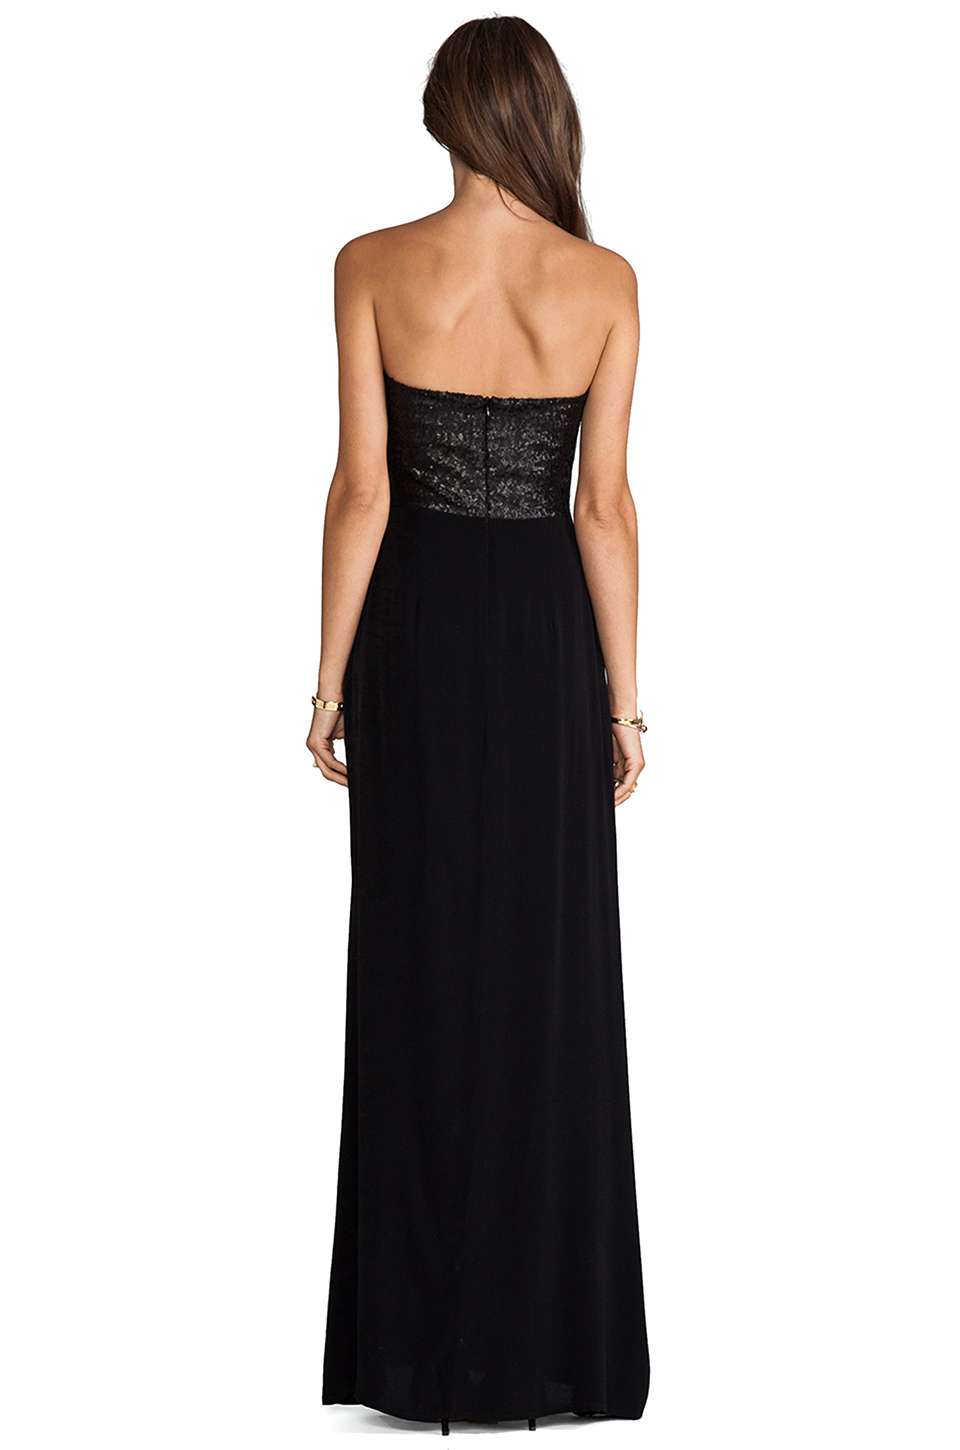 Nookie Masquerade Maxi Dress in Black